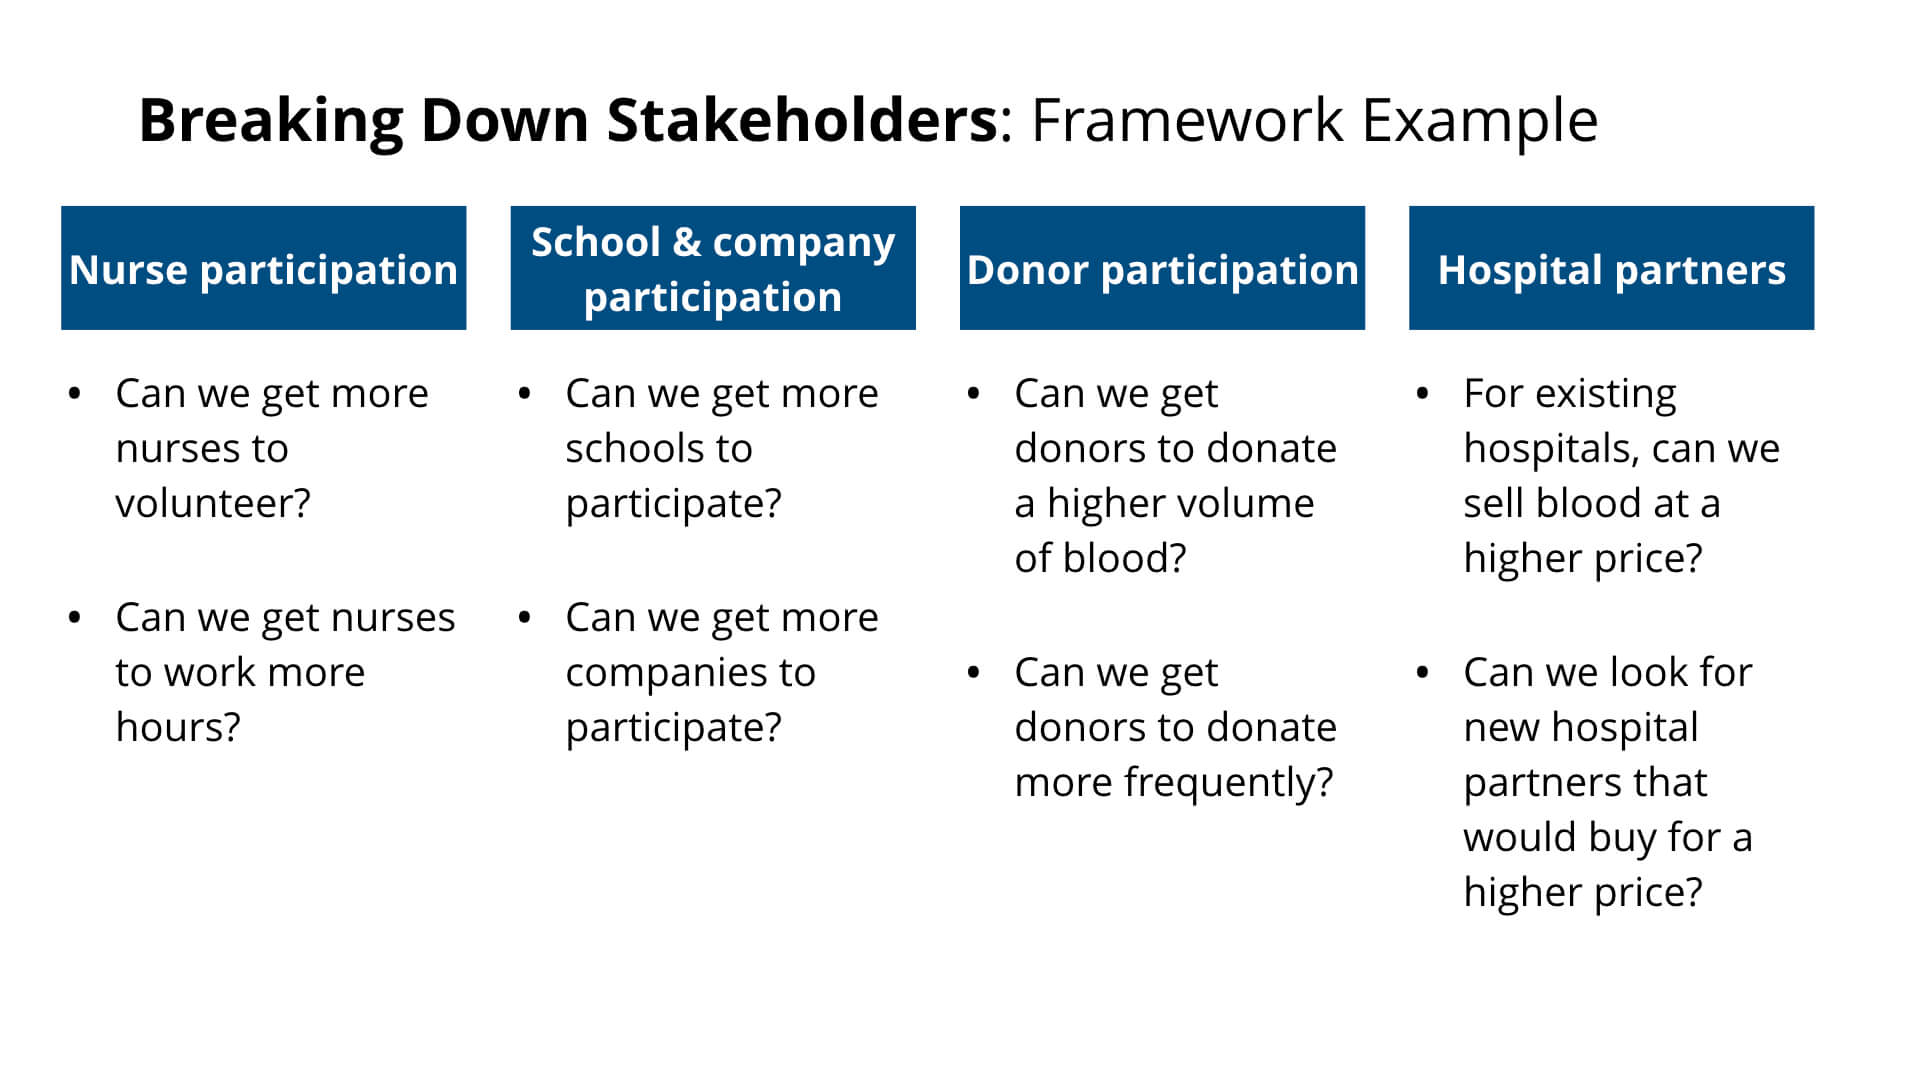 Breaking Down Stakeholders Framework Example